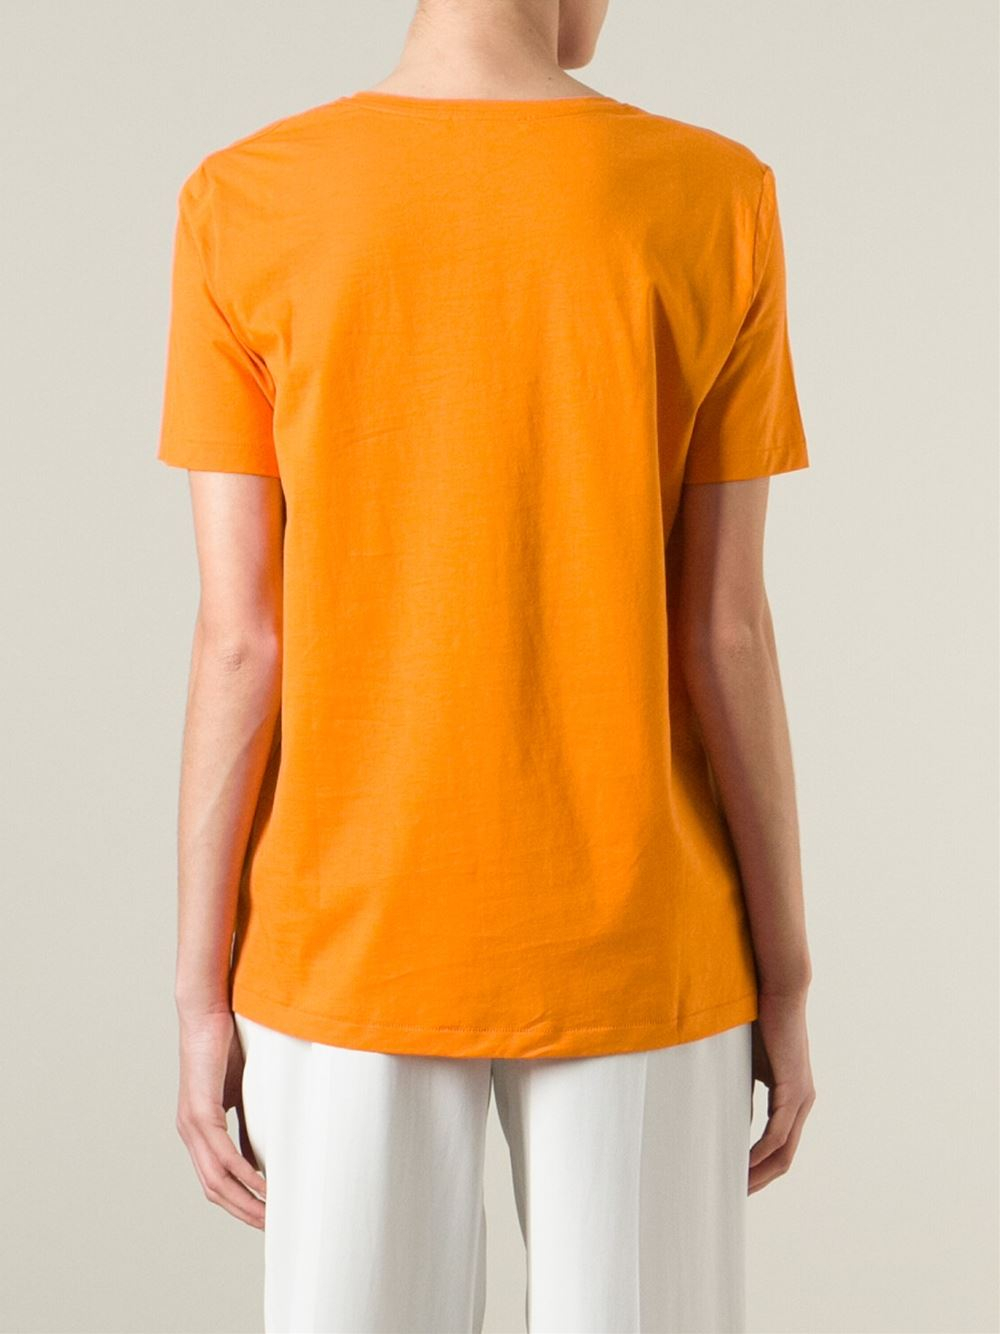 Acne 39 vista 39 portrait print t shirt in orange yellow for Vista t shirt printing